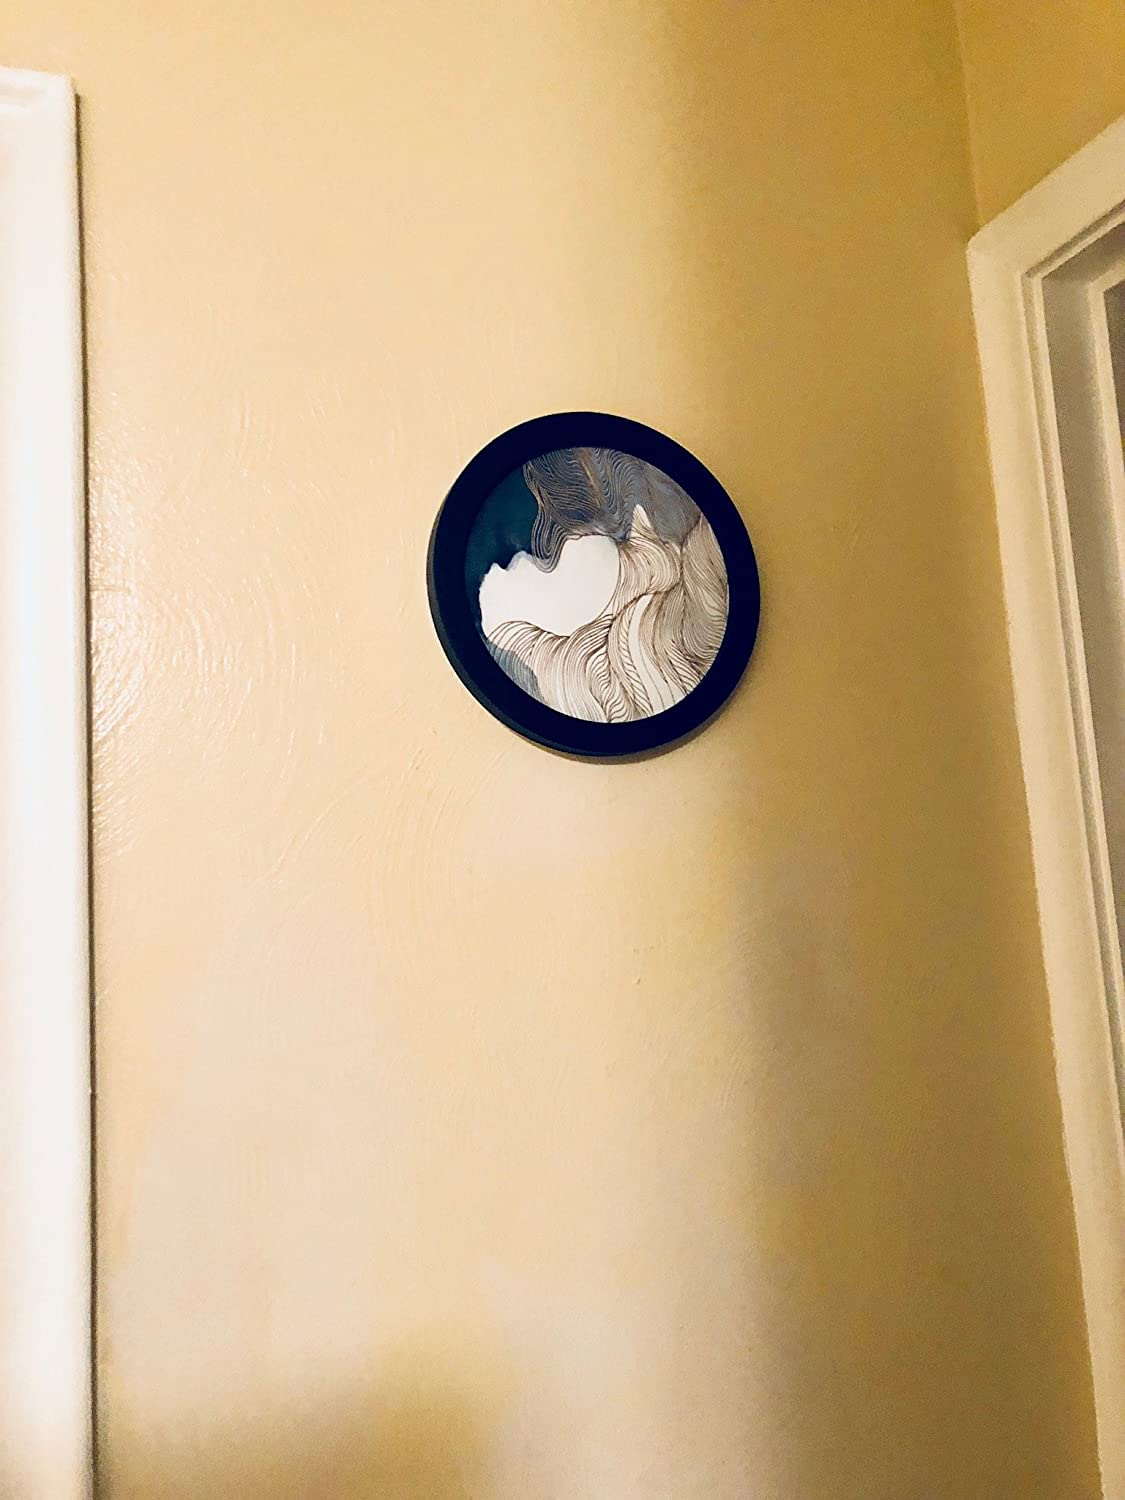 Amazon.com: Round Wood Frame / Acrylic Cover & Removable Canvas ...